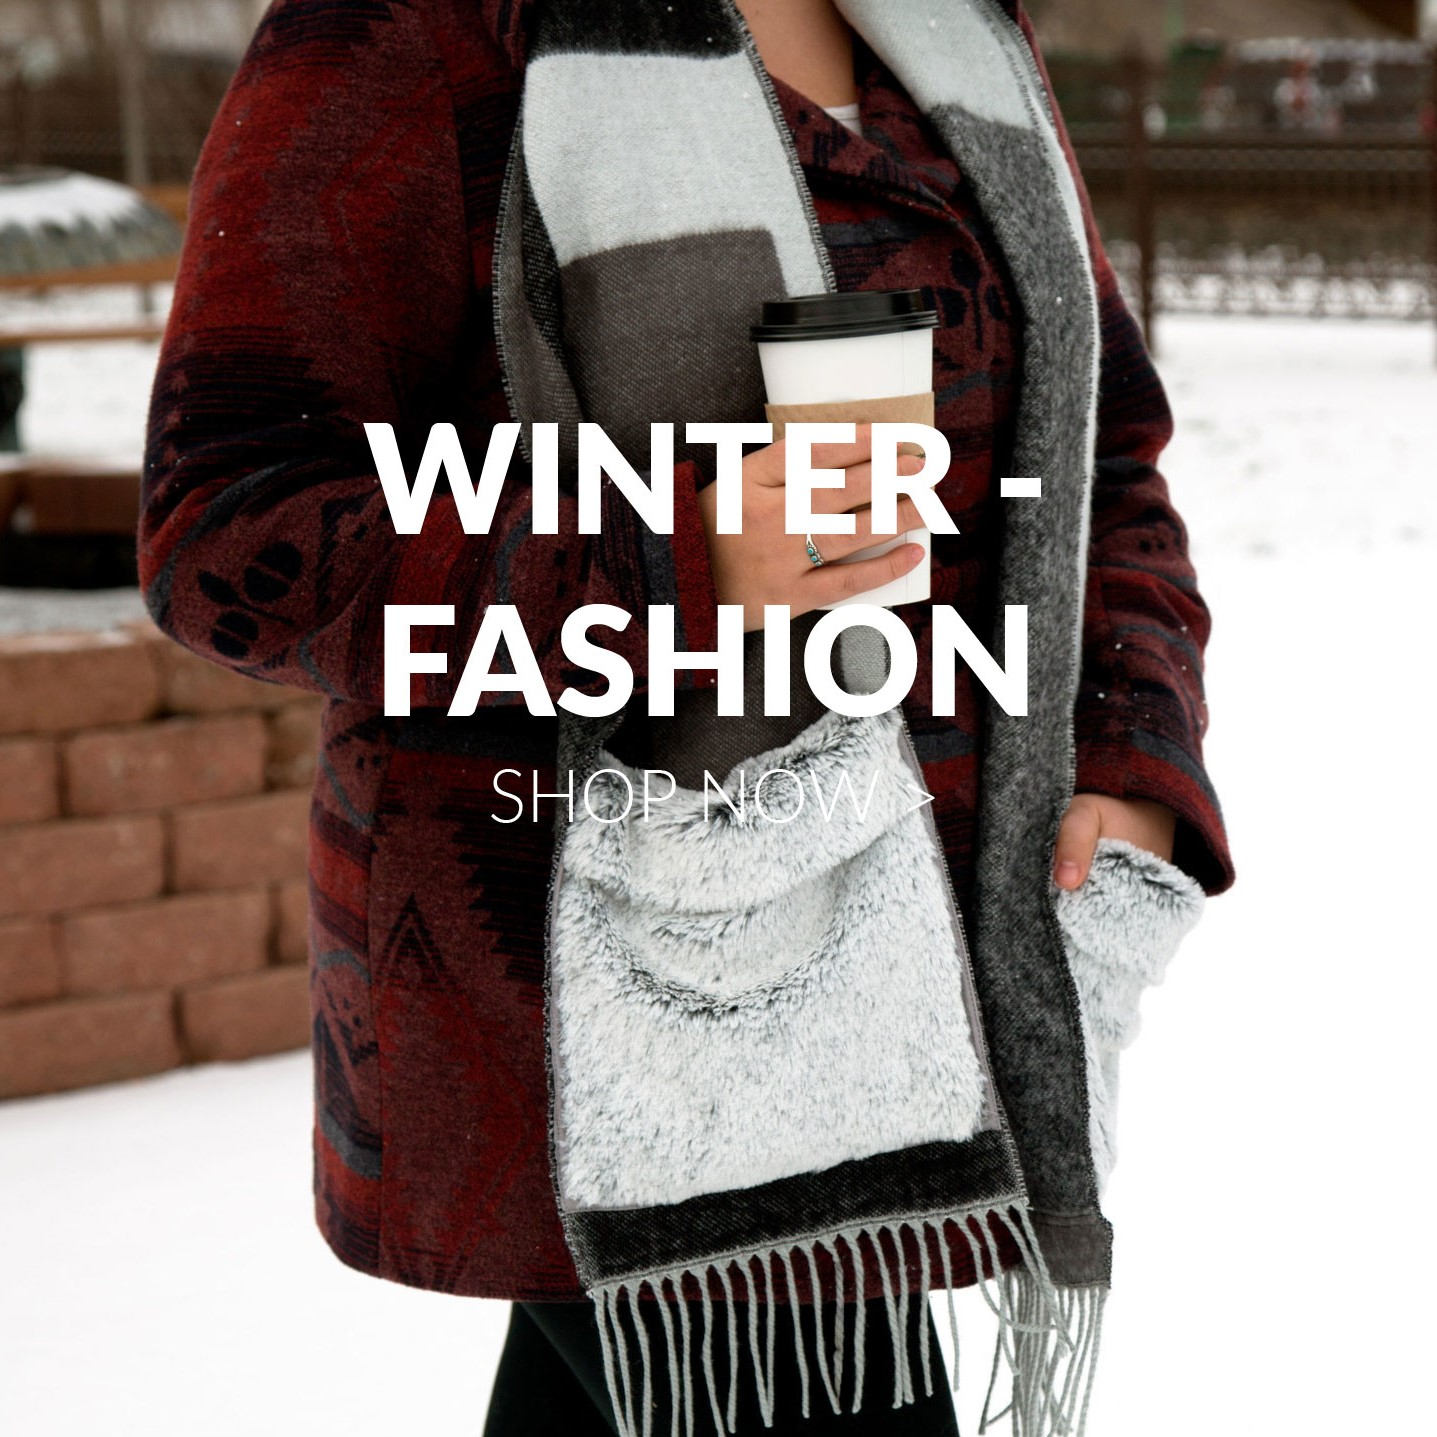 Winter - Fashion